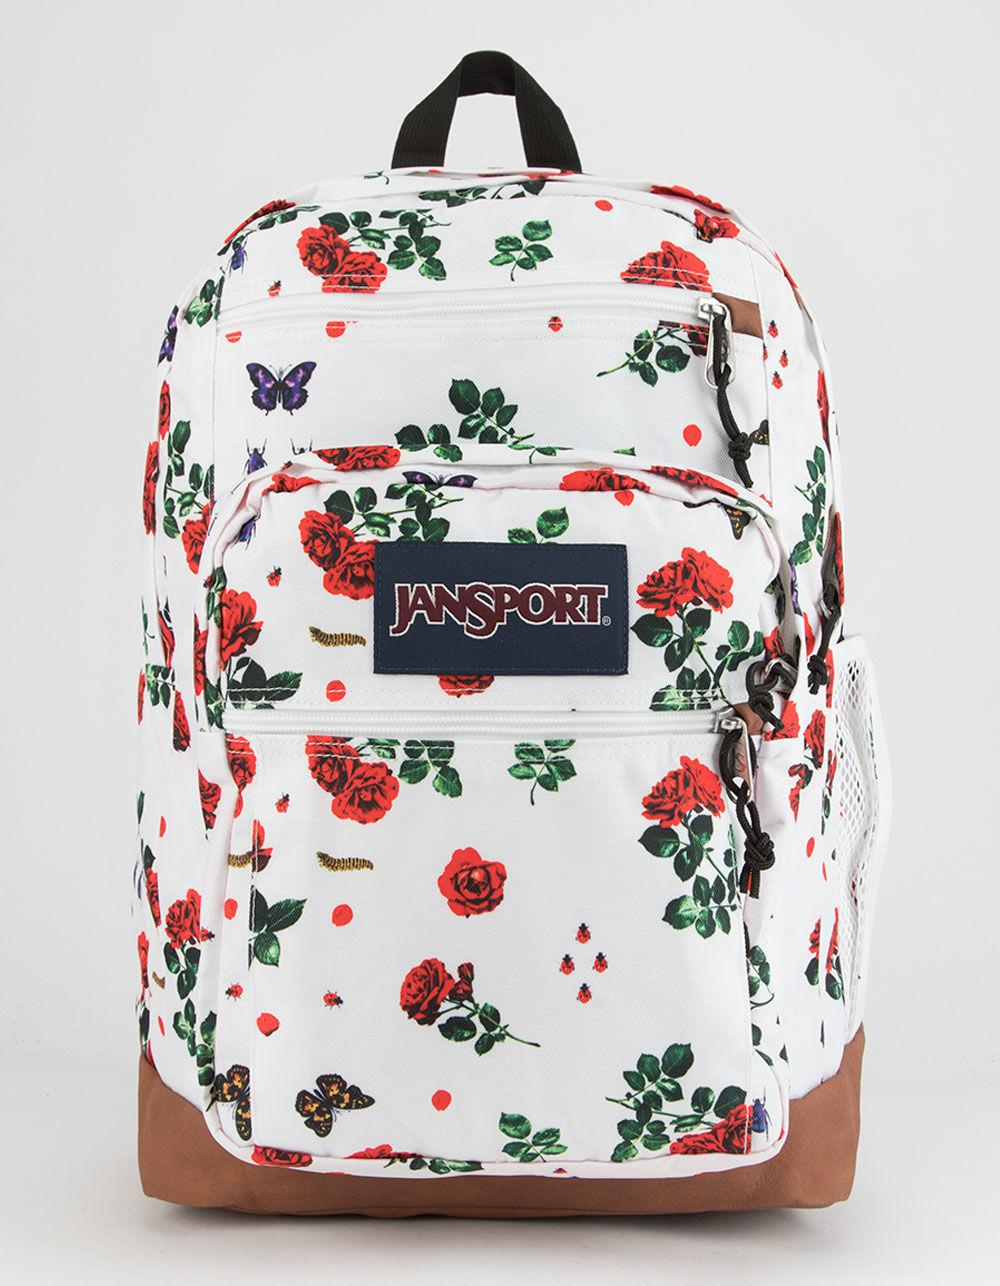 Where Can You Buy Jansport Backpacks In Canada - CEAGESP